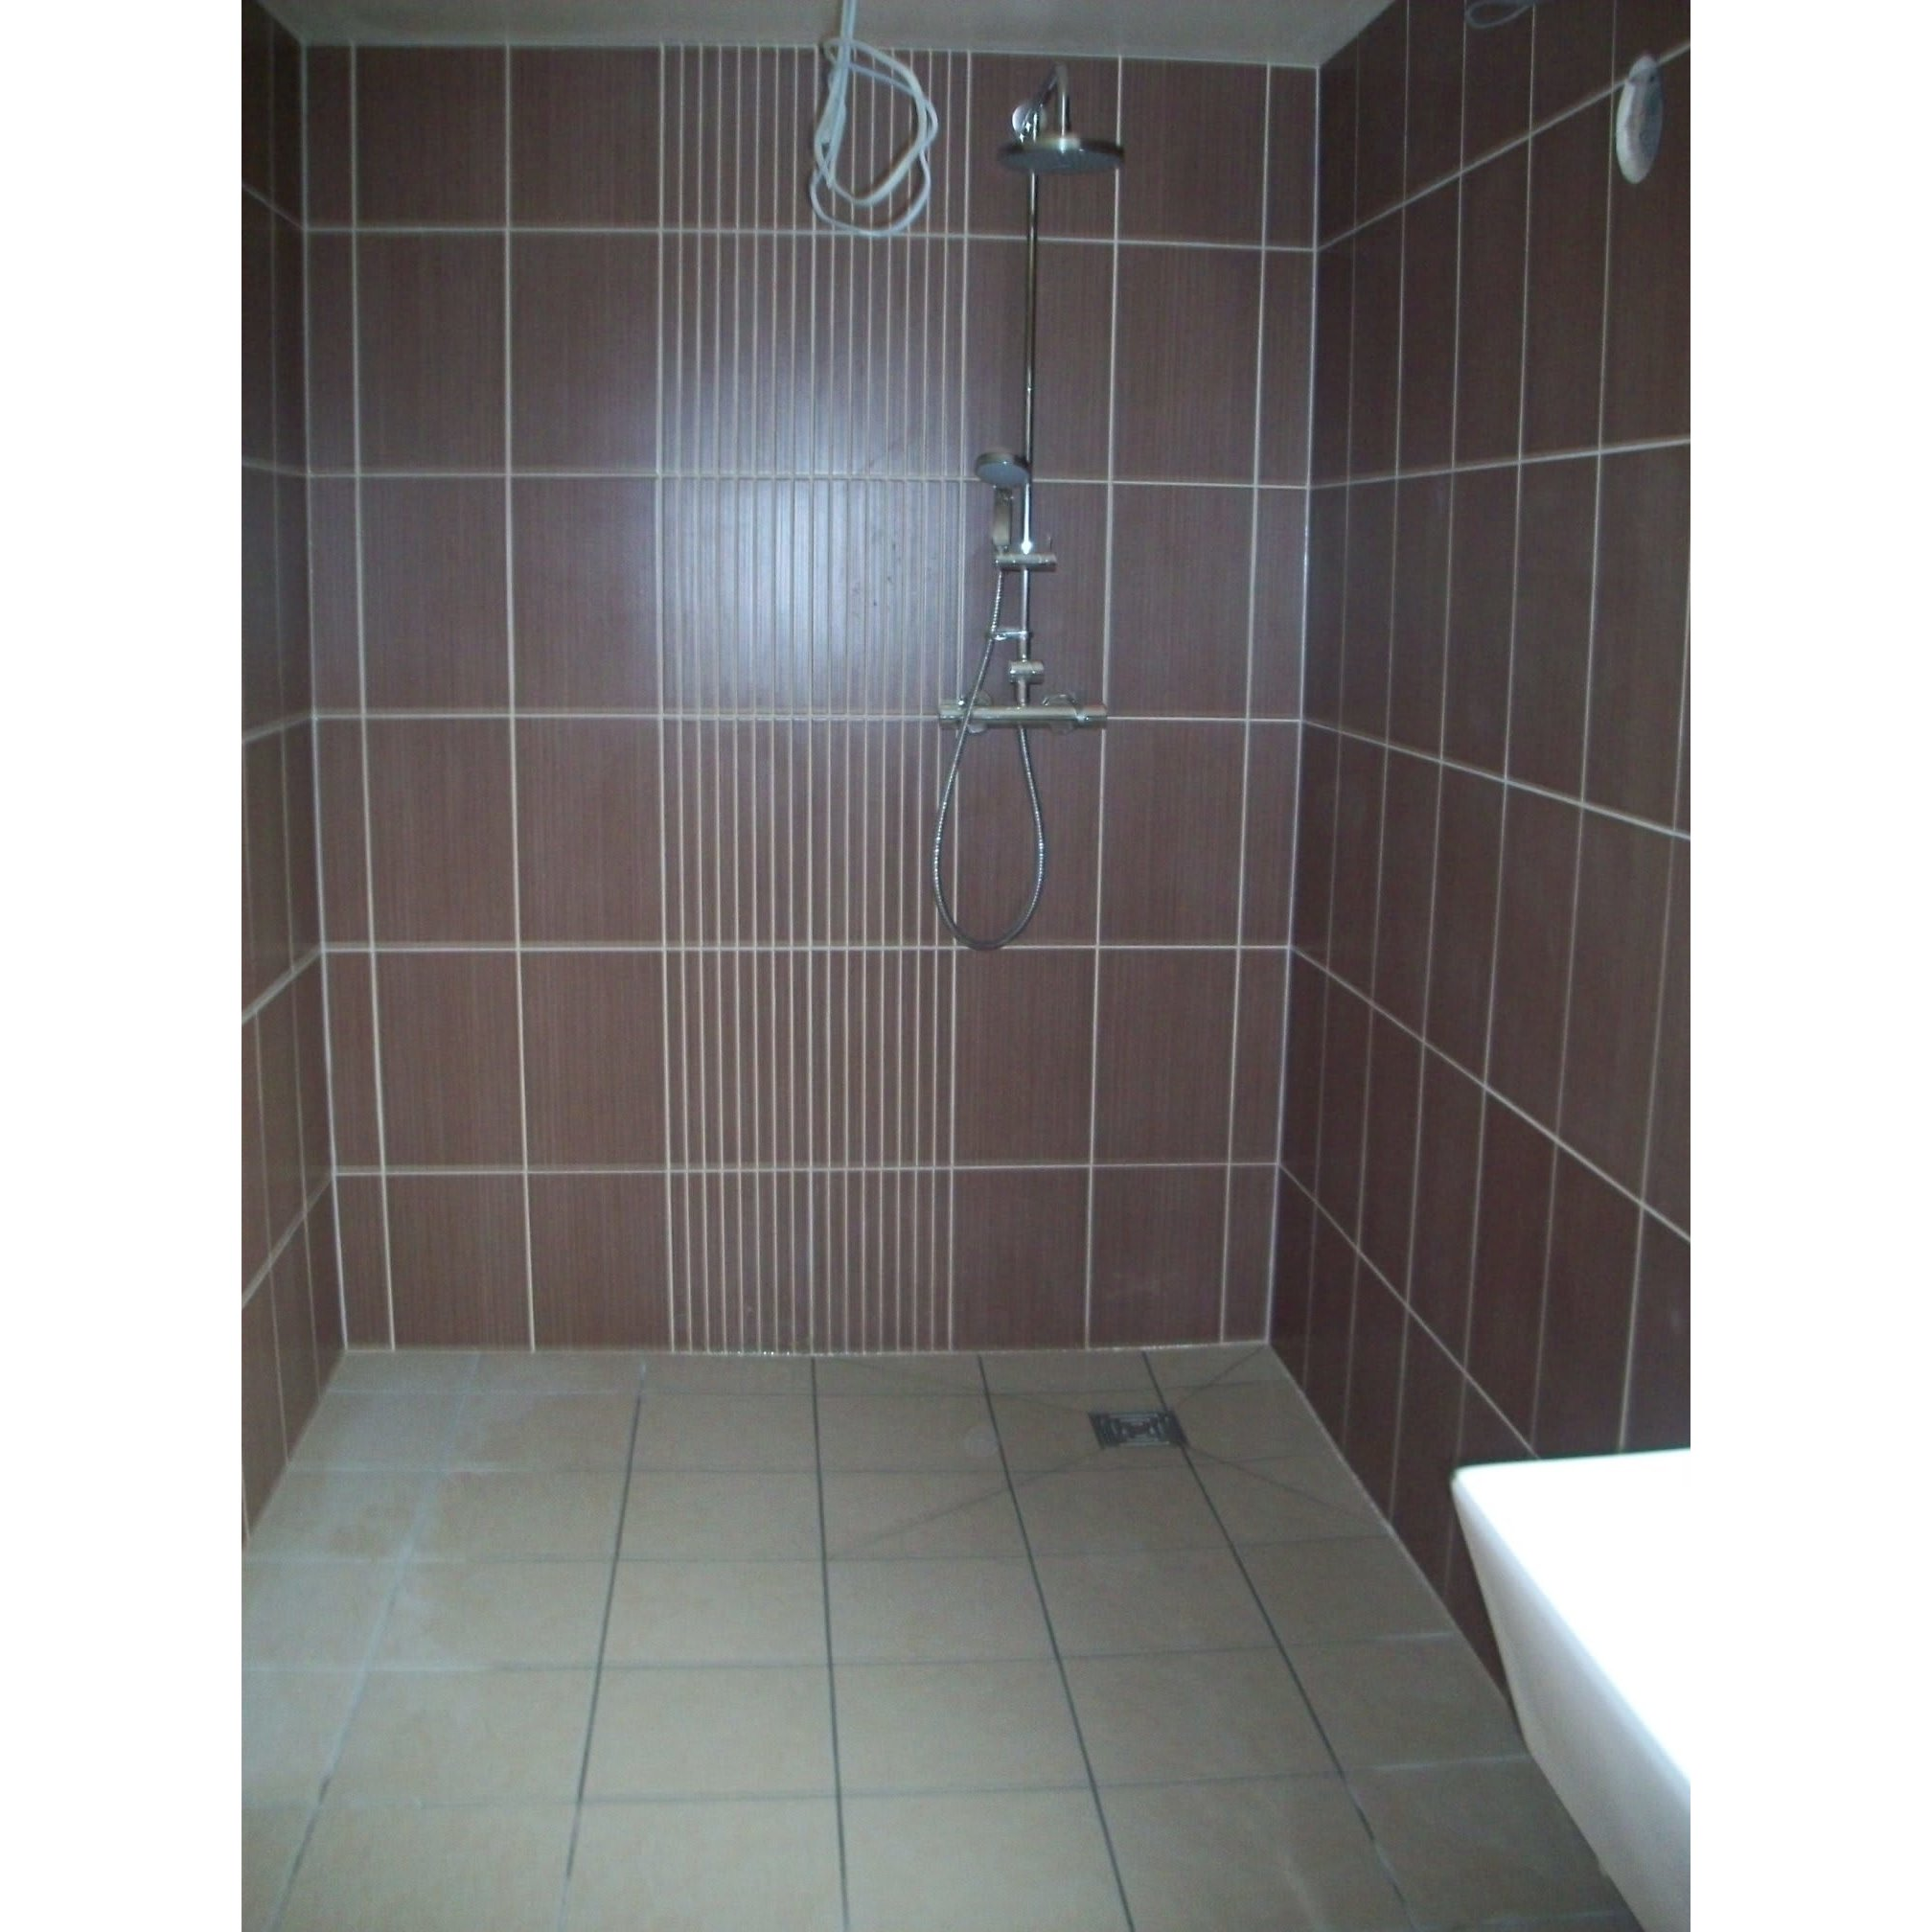 Harlequin Tiling Services Ltd - Lincoln, Lincolnshire LN6 8SG - 01522 801996 | ShowMeLocal.com